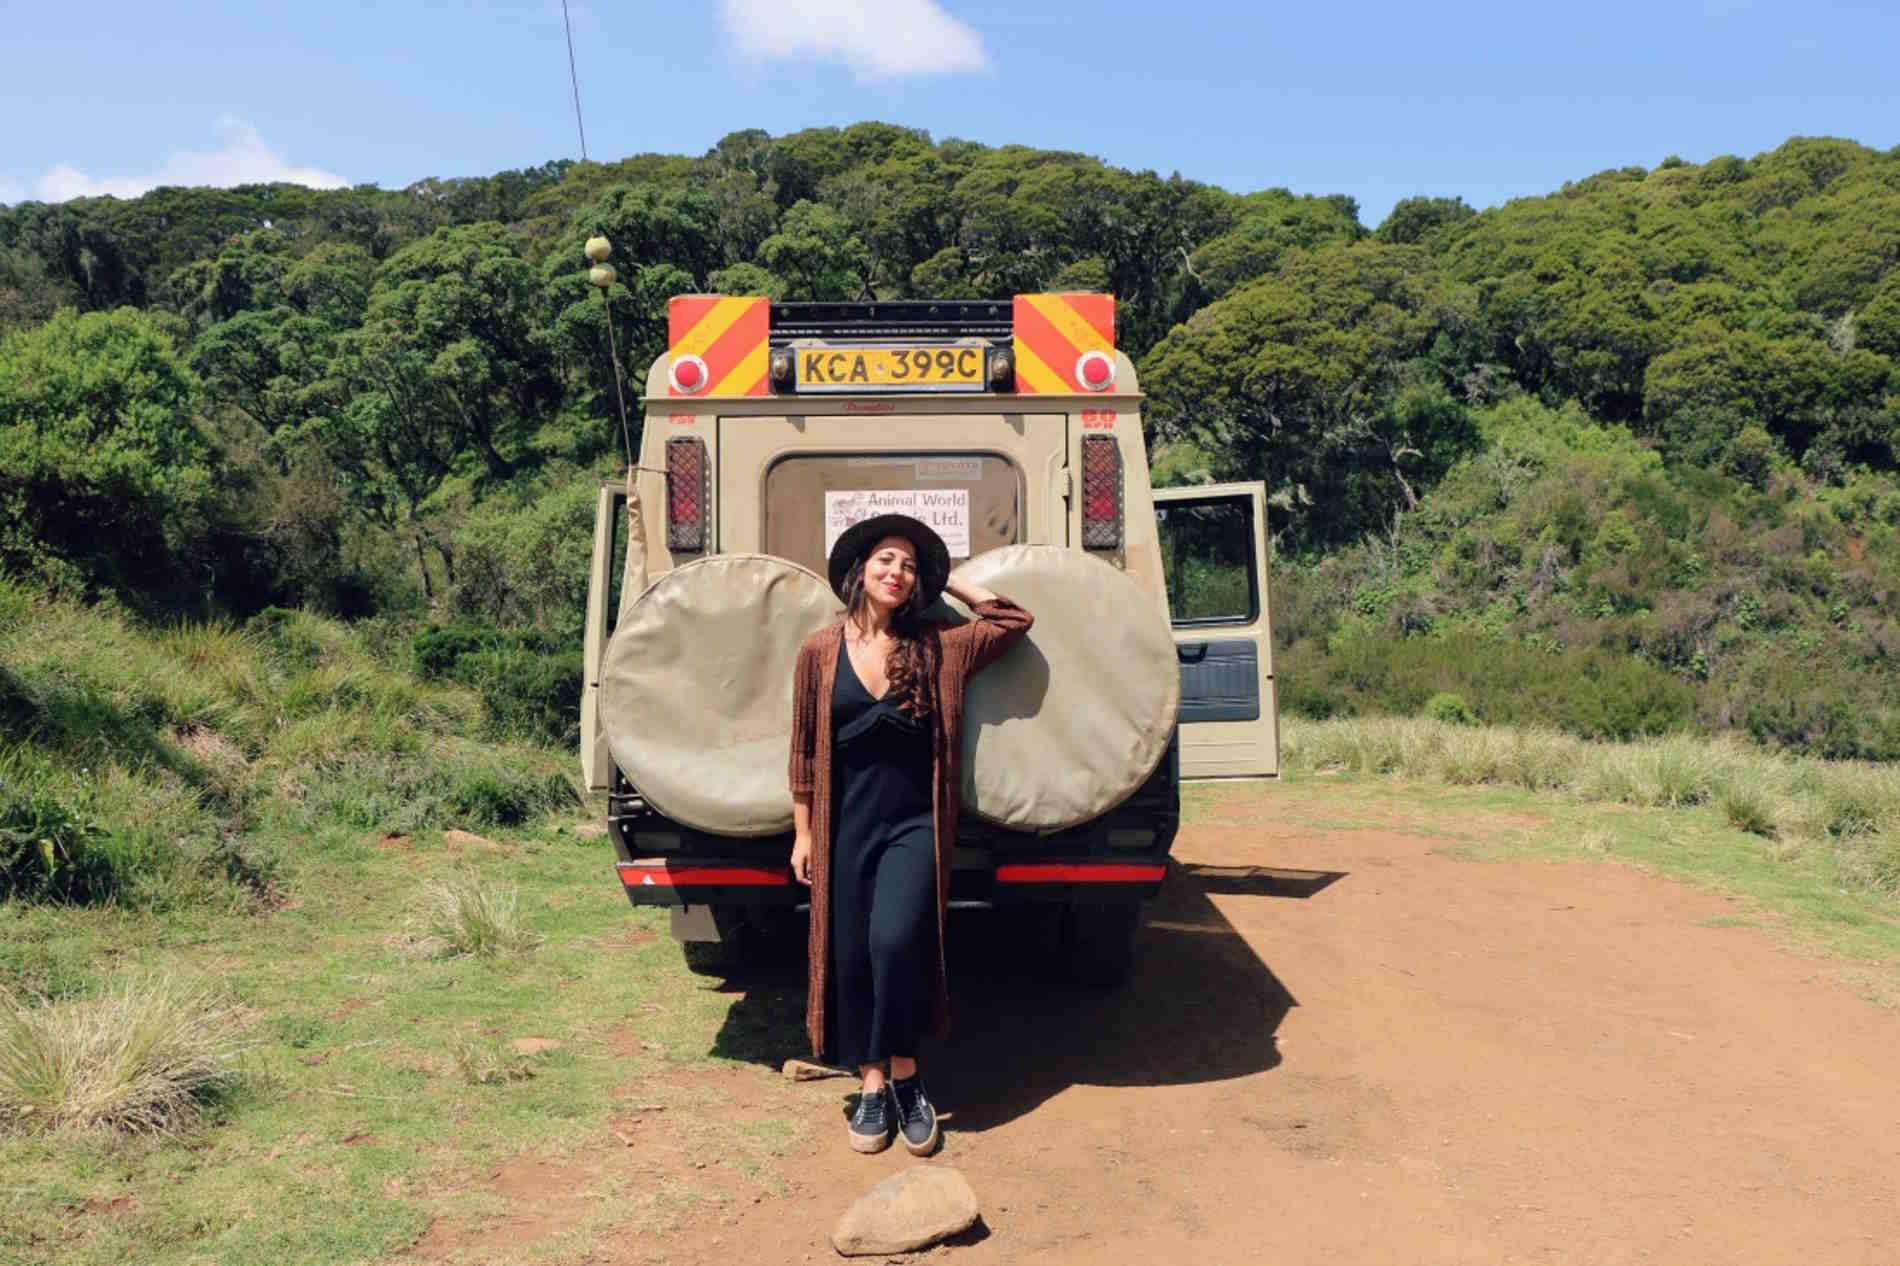 intervista-a-Manuela-Vitulli-Travel-Blogger-professionista-in-Kenya-allaberdare-national-park